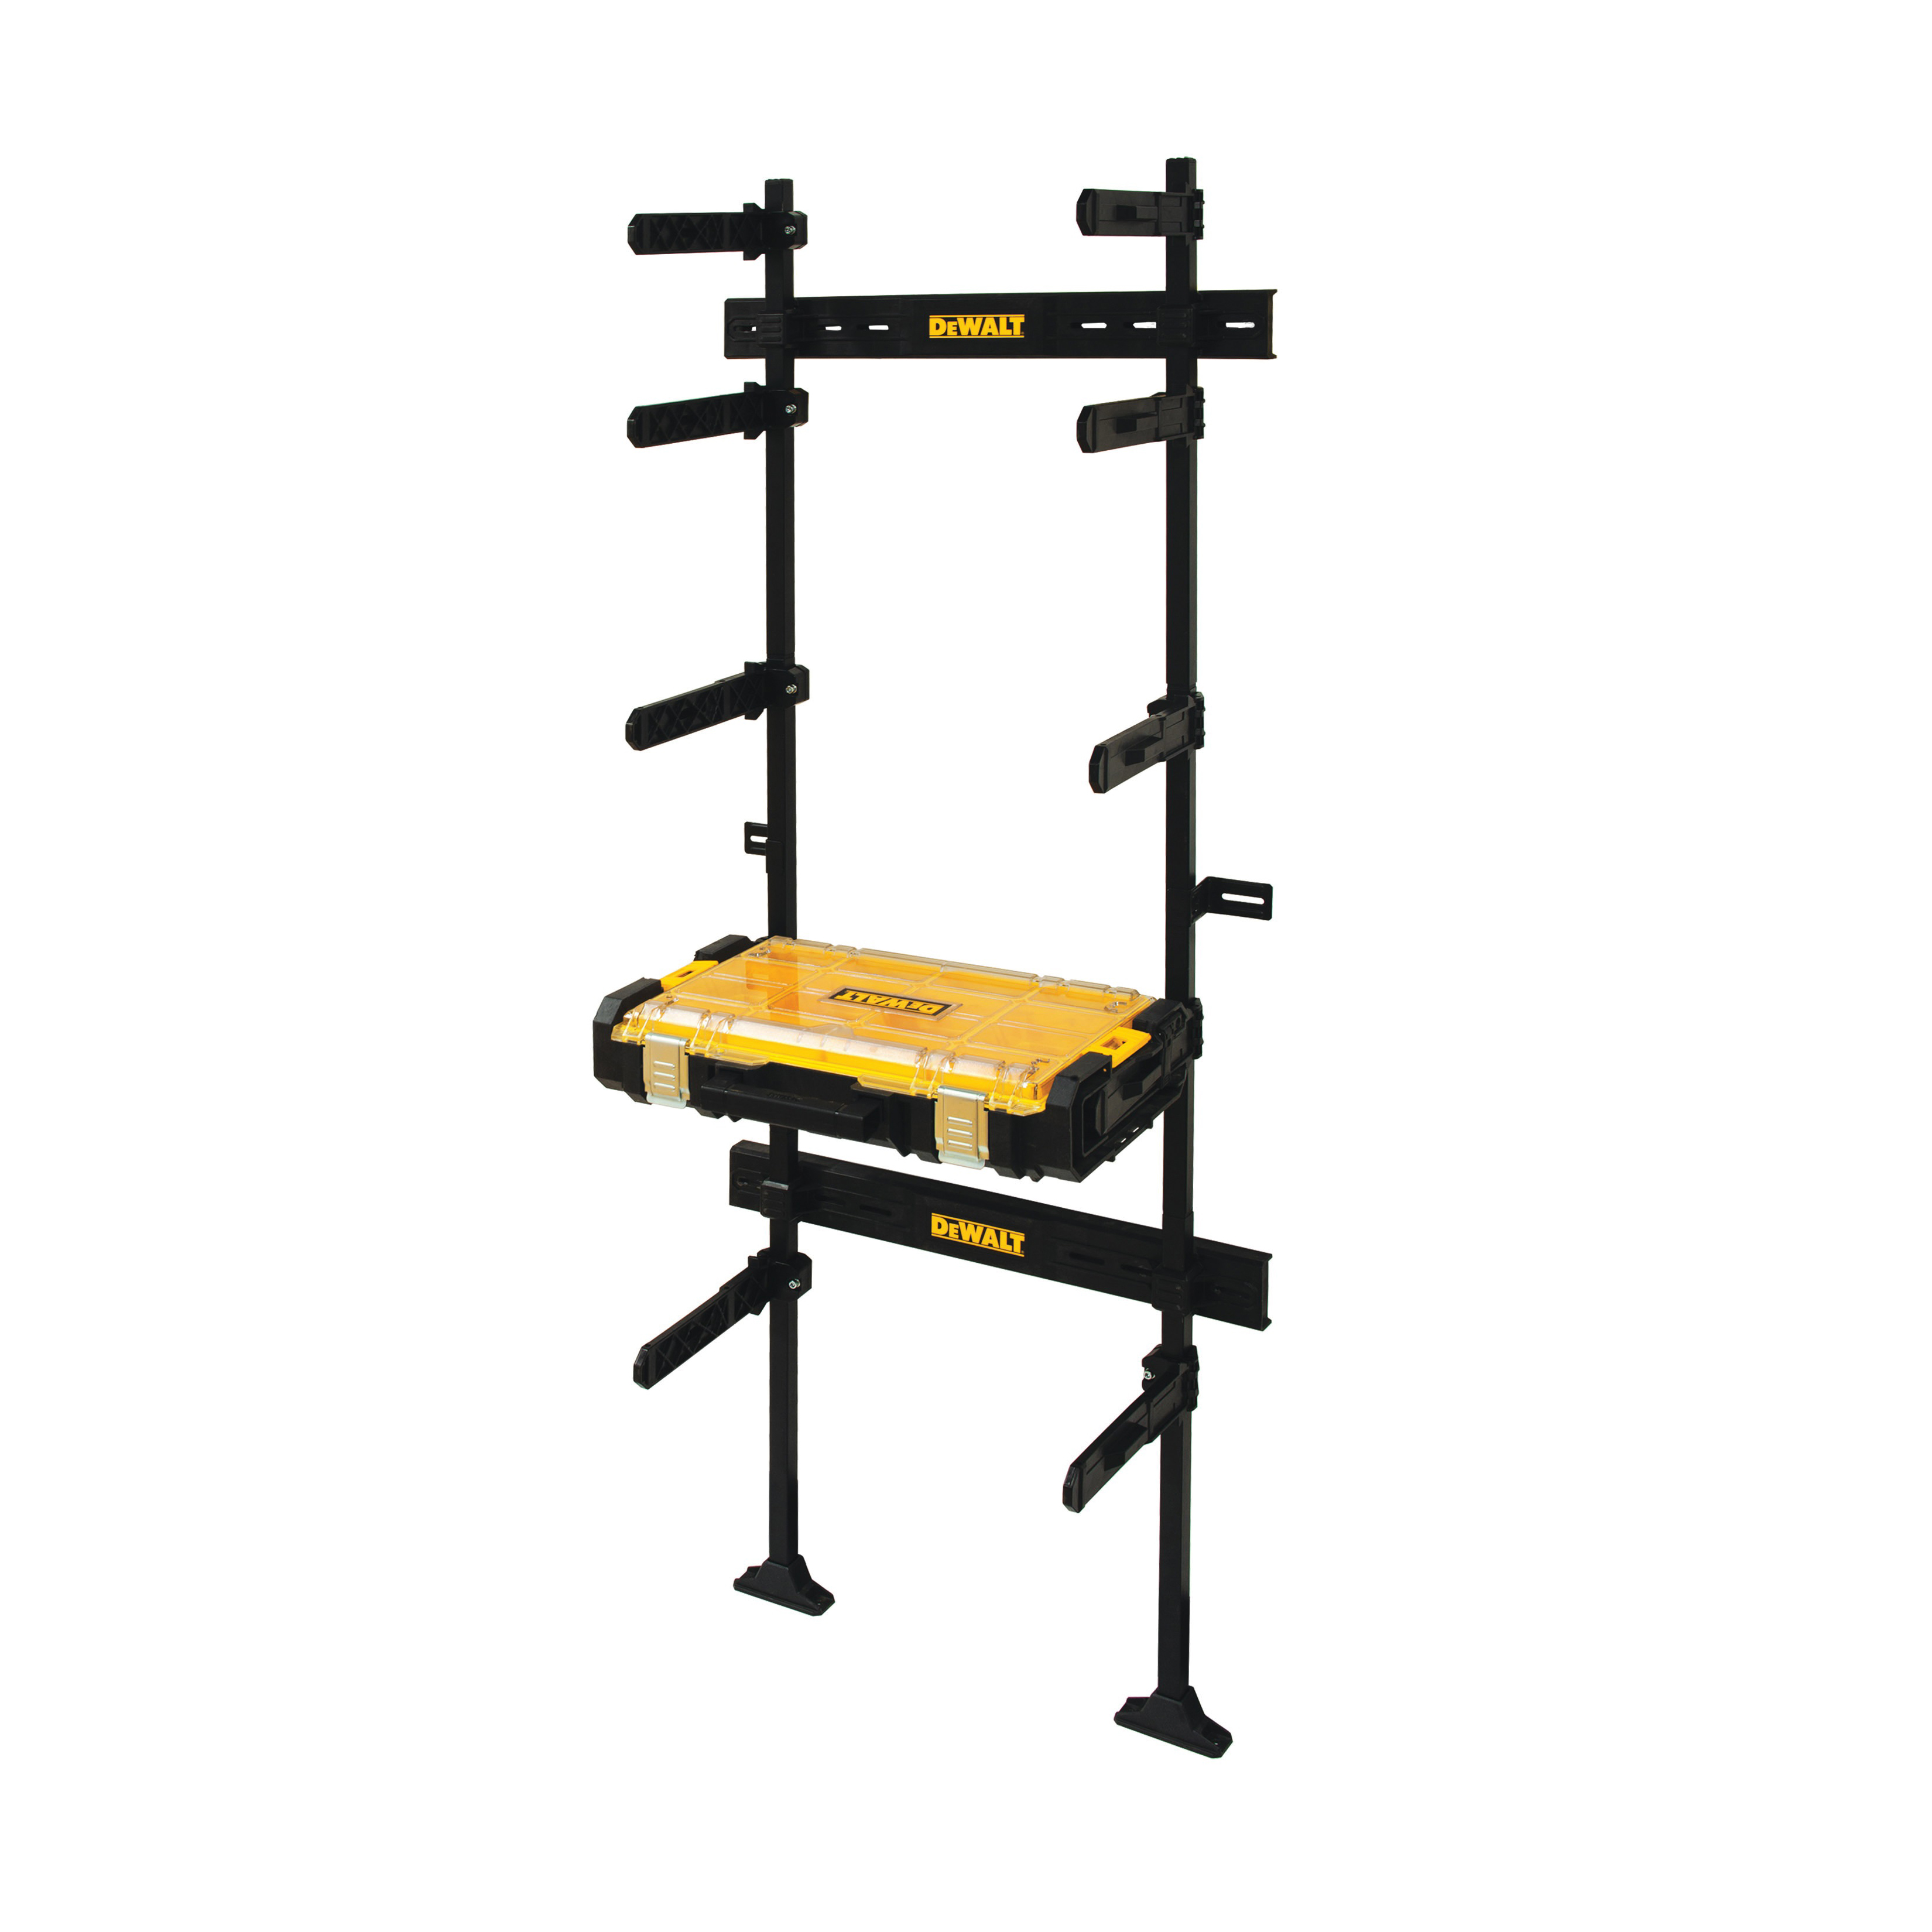 Picture of DeWALT DWST08270 Workshop Racking System with Organizer, 440 lb, 12-7/8 in W, 70-3/4 in H, 25-1/2 in L